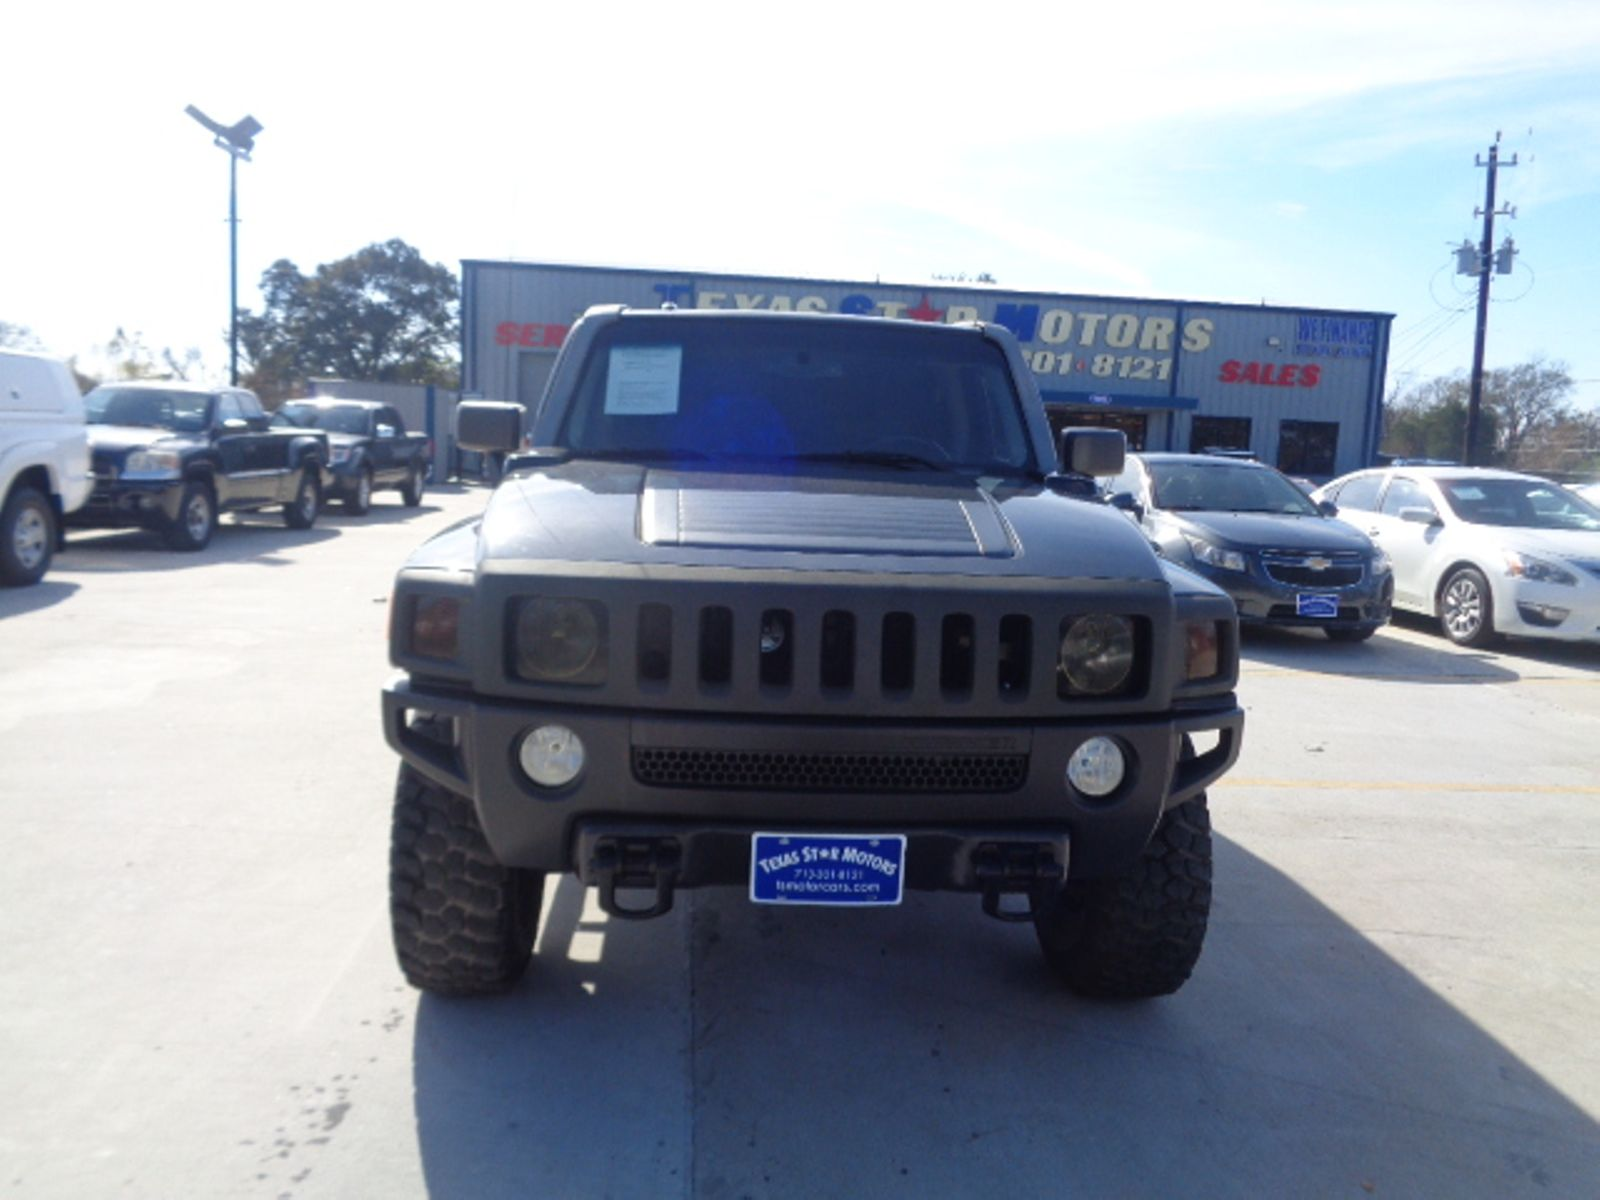 2007 Hummer H3 Blue Cars Wallpaper Free